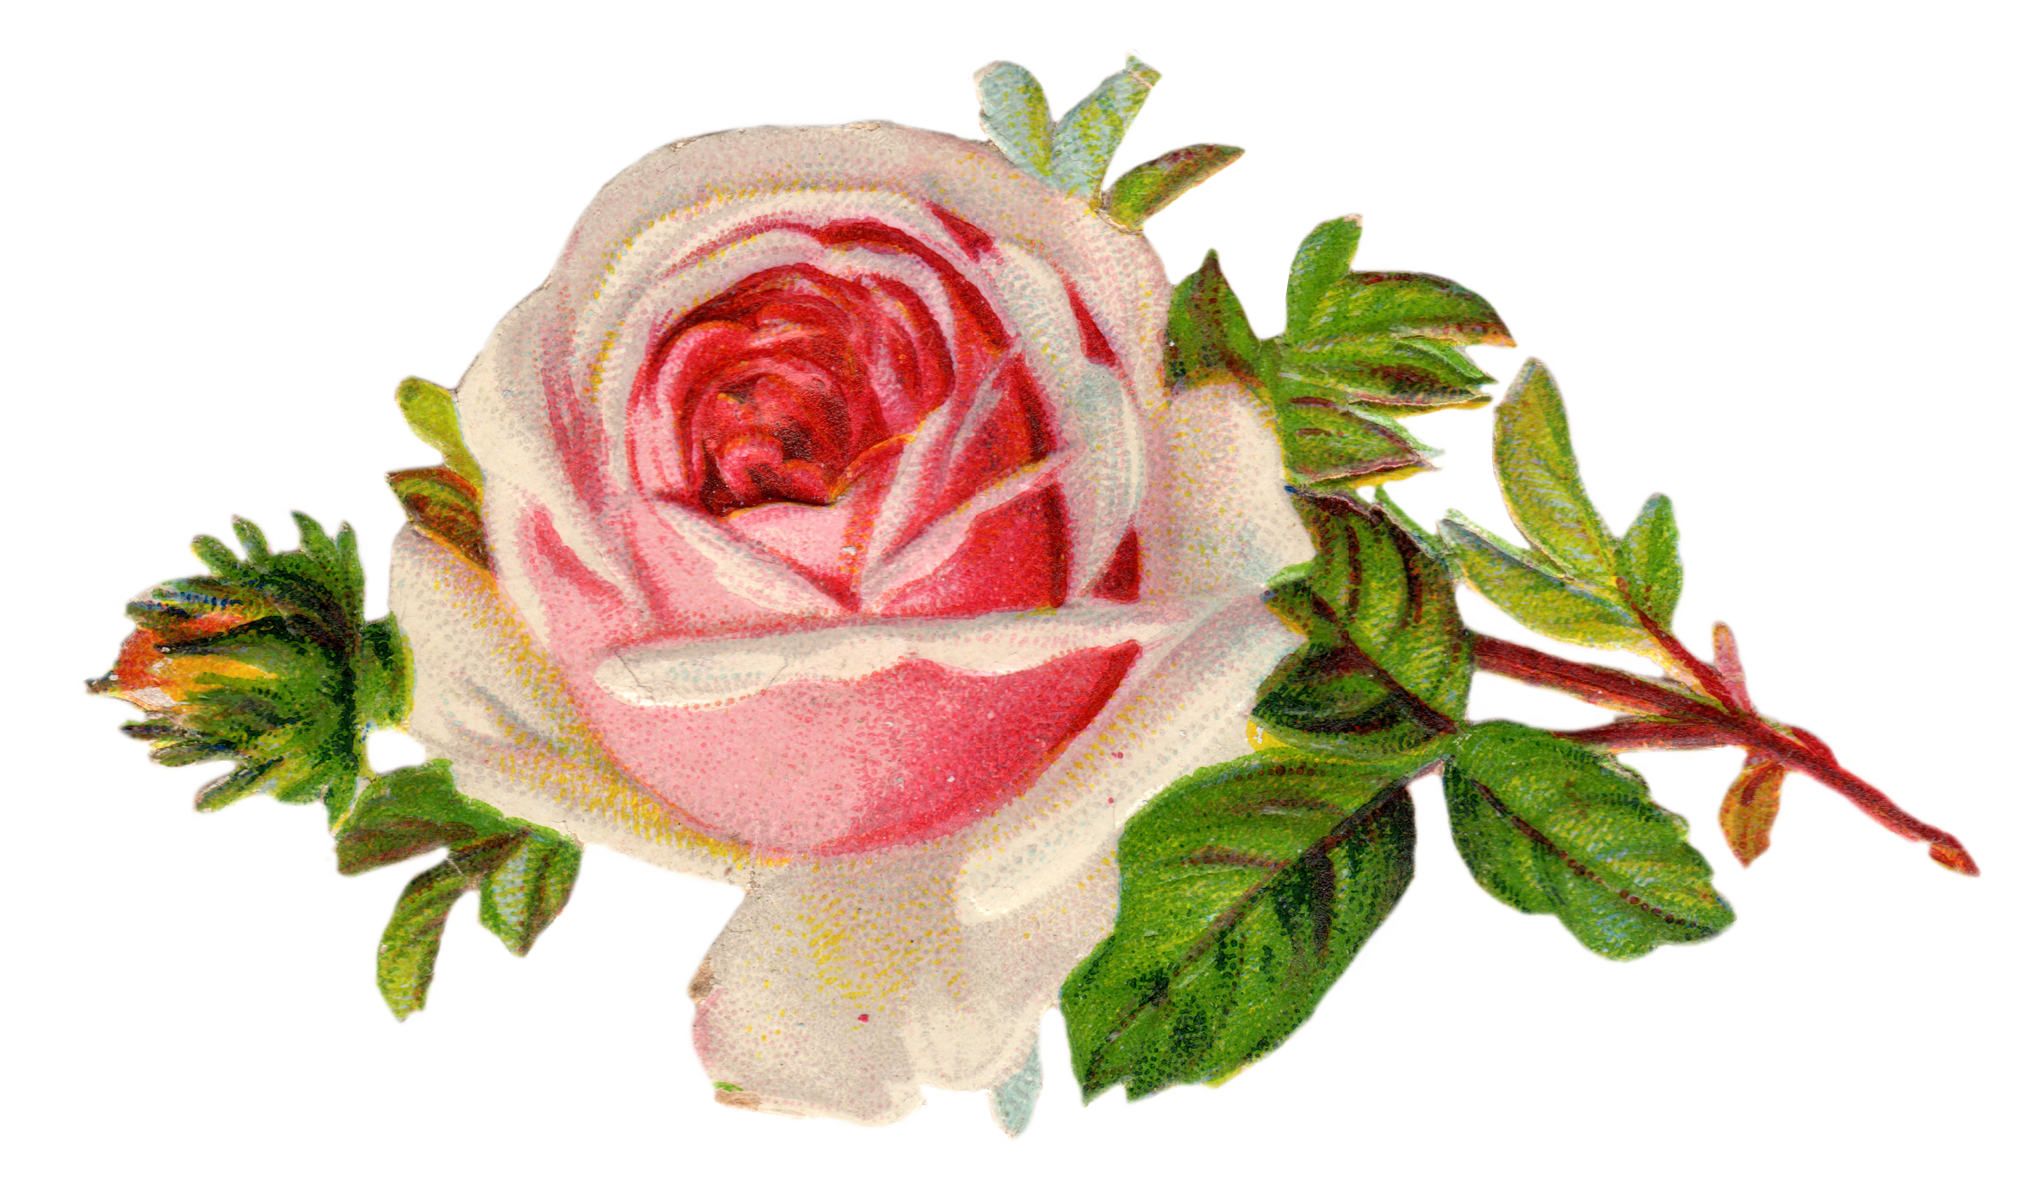 Free Vintage Rose Clip Art By FPTFYVintage Rose Clip Art